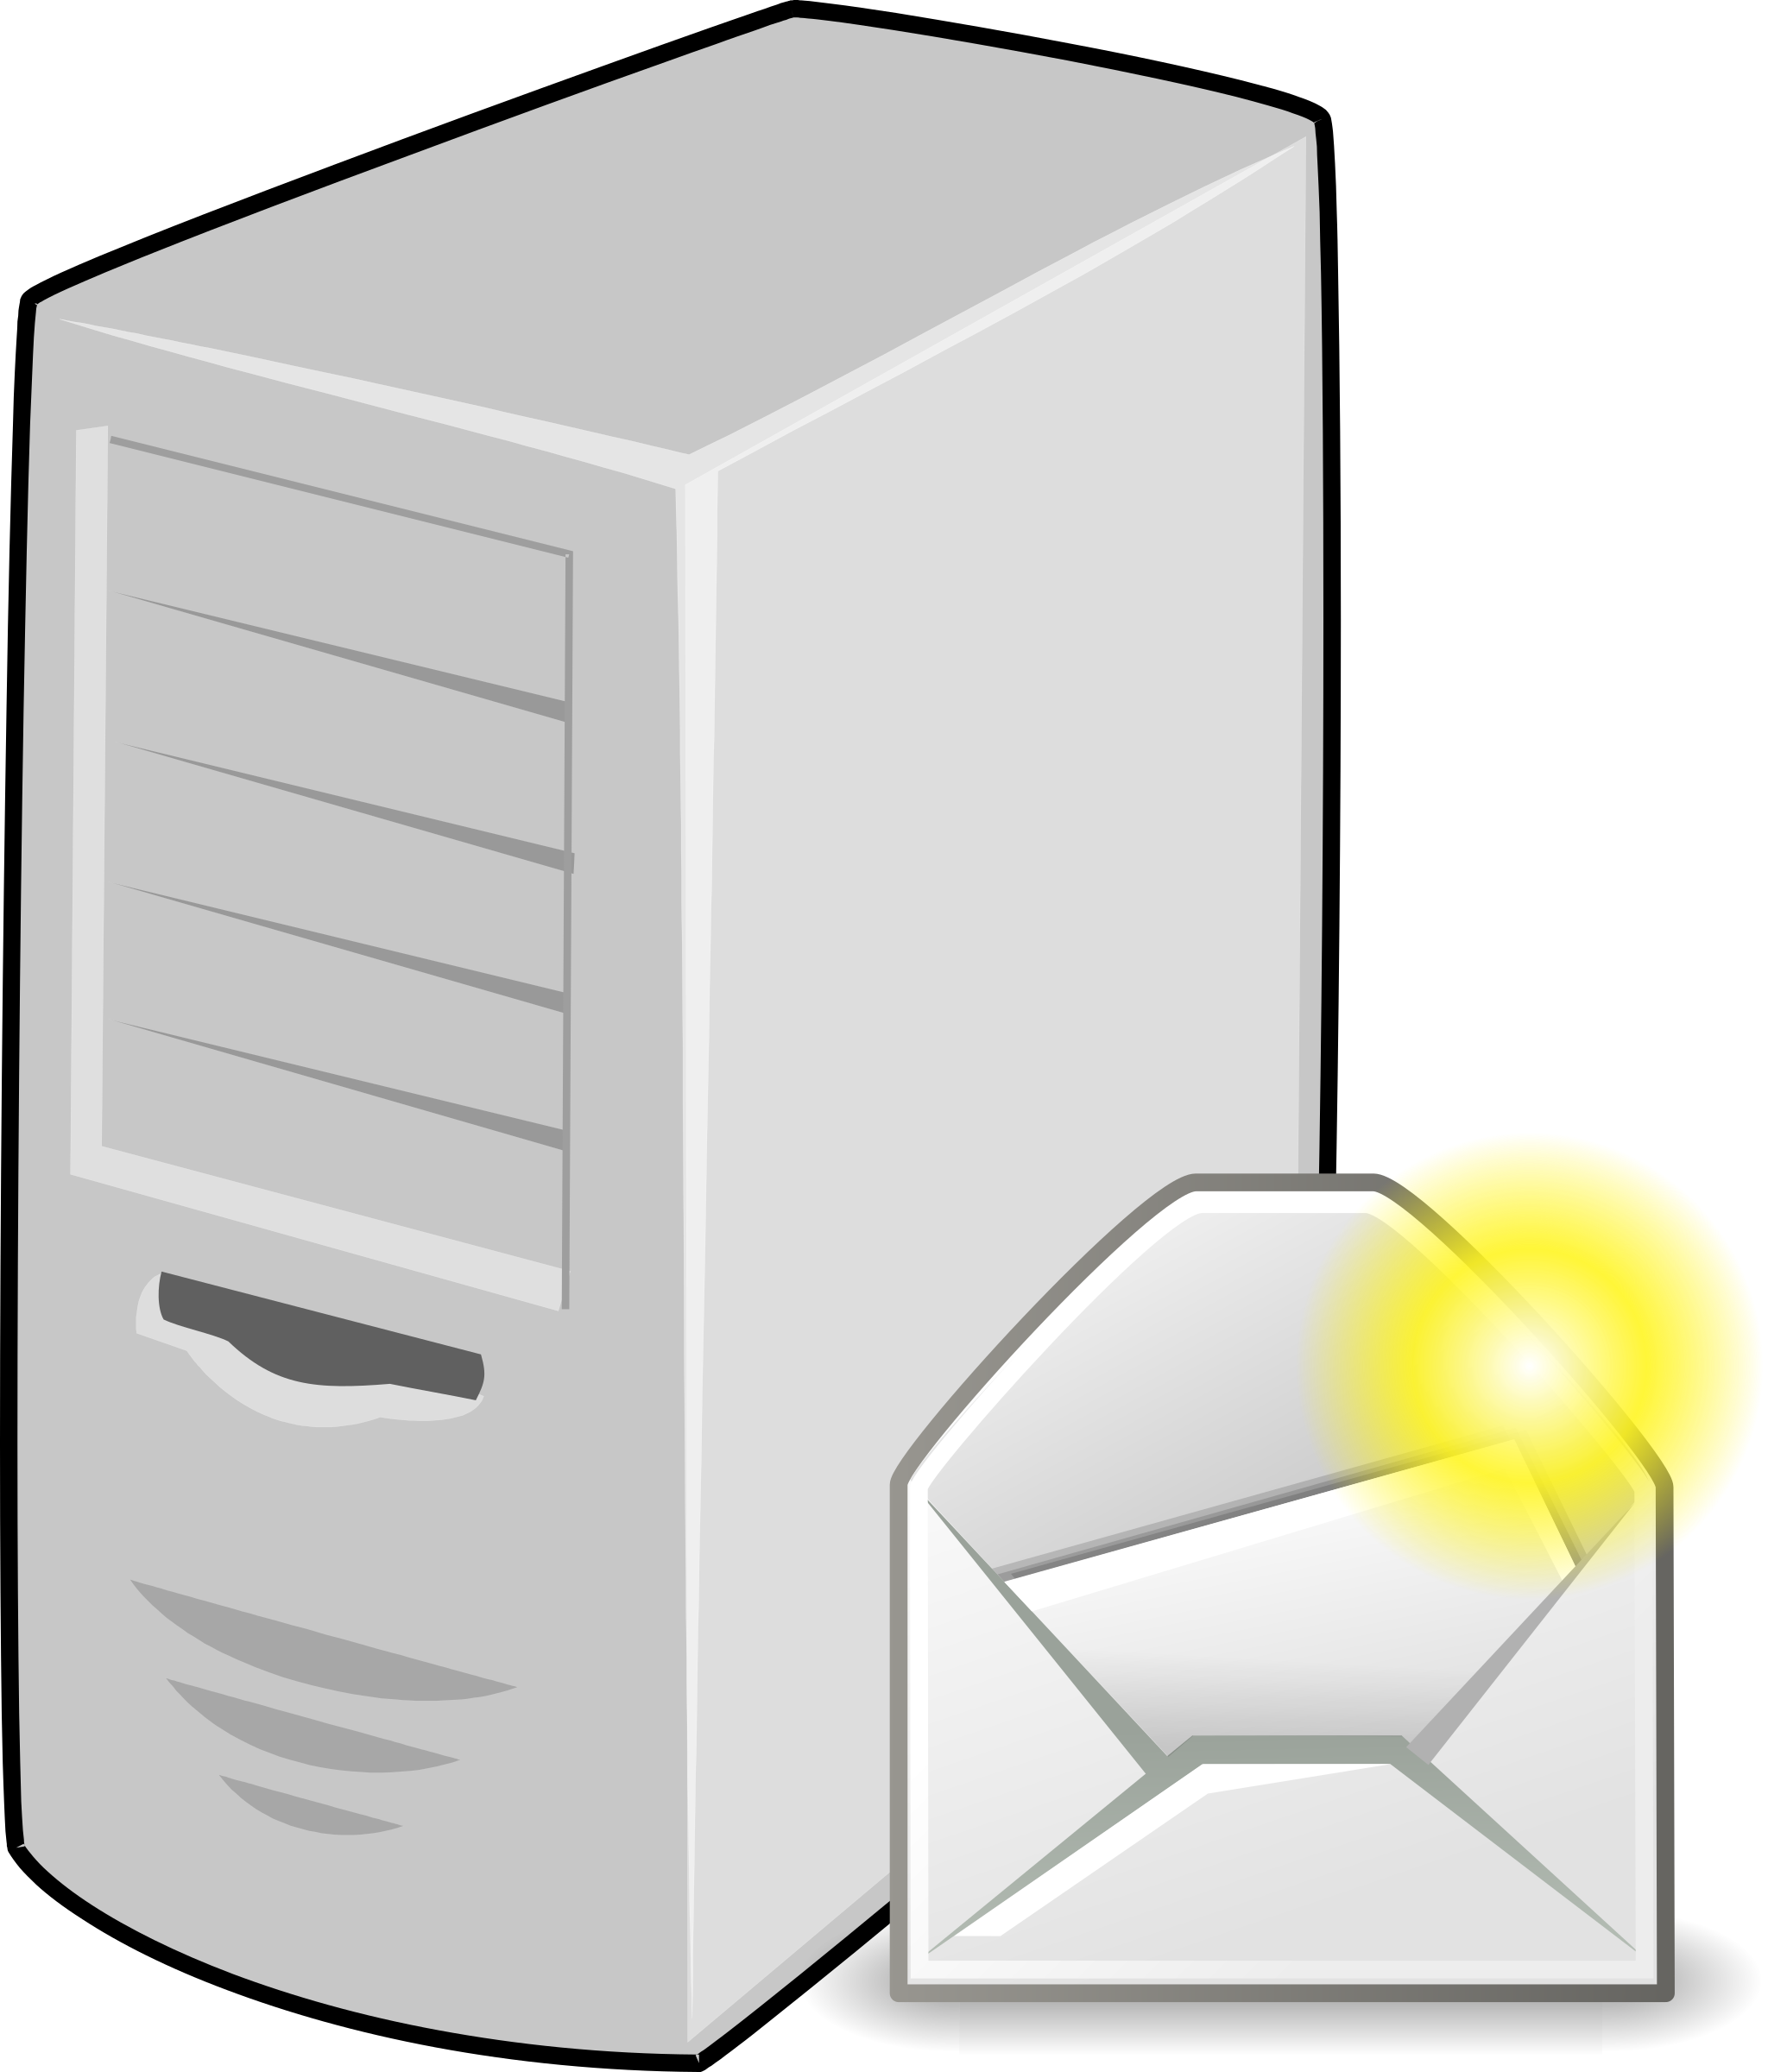 Server clipart server icon. Email icons png free